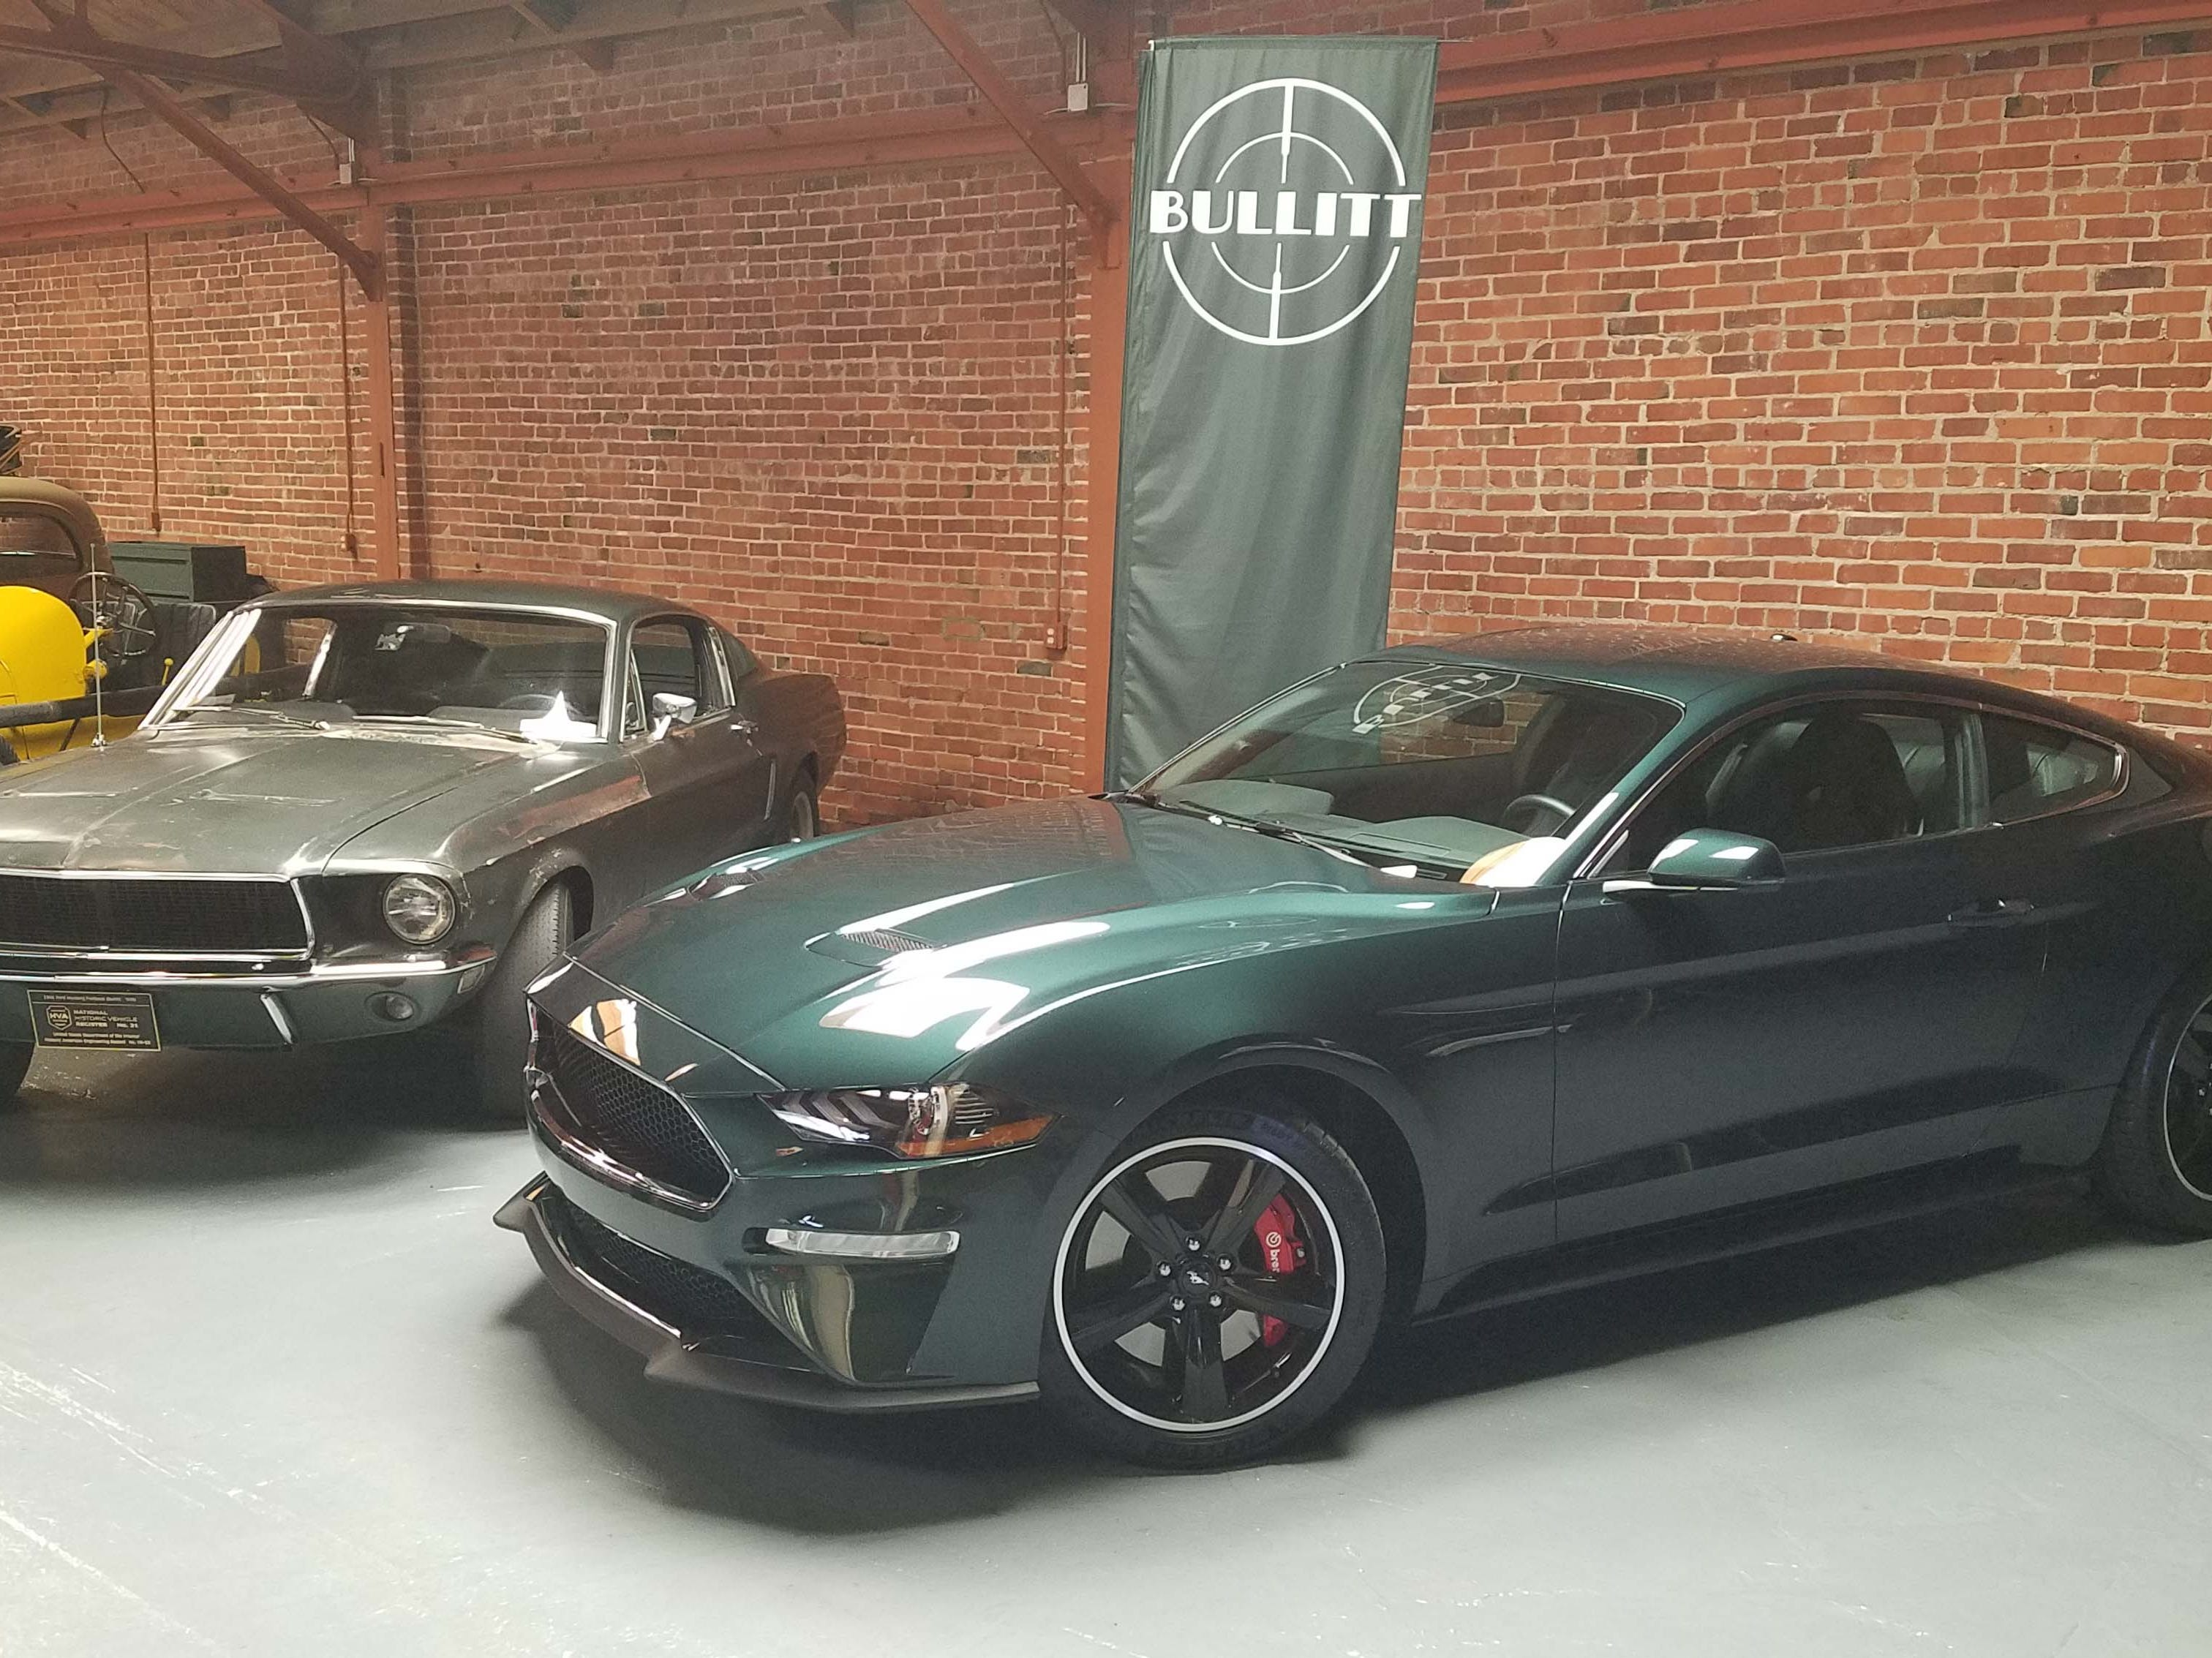 """The fastback window in the 2019 Ford Mustang Bullitt is identical in angle to the original,1968 Ford Mustang Fastback in the movie """"Bullitt."""""""